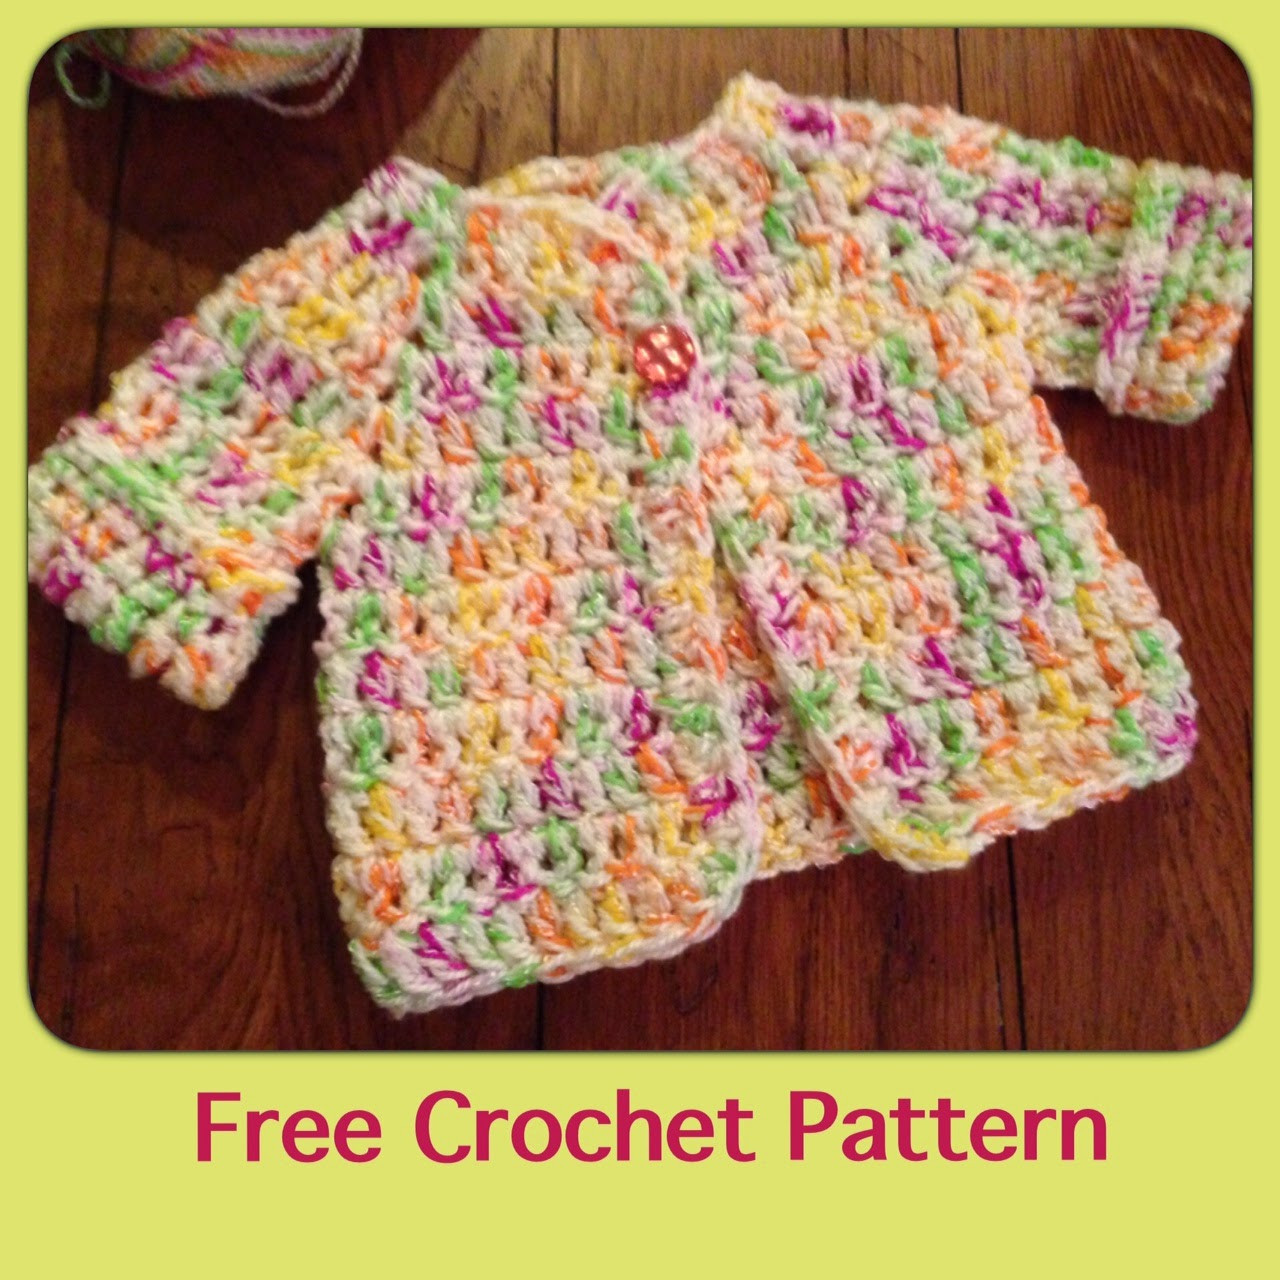 Best Of Free Crochet top Patterns Page 2 Free Crochet Baby Sweater Patterns Of Wonderful 40 Images Free Crochet Baby Sweater Patterns